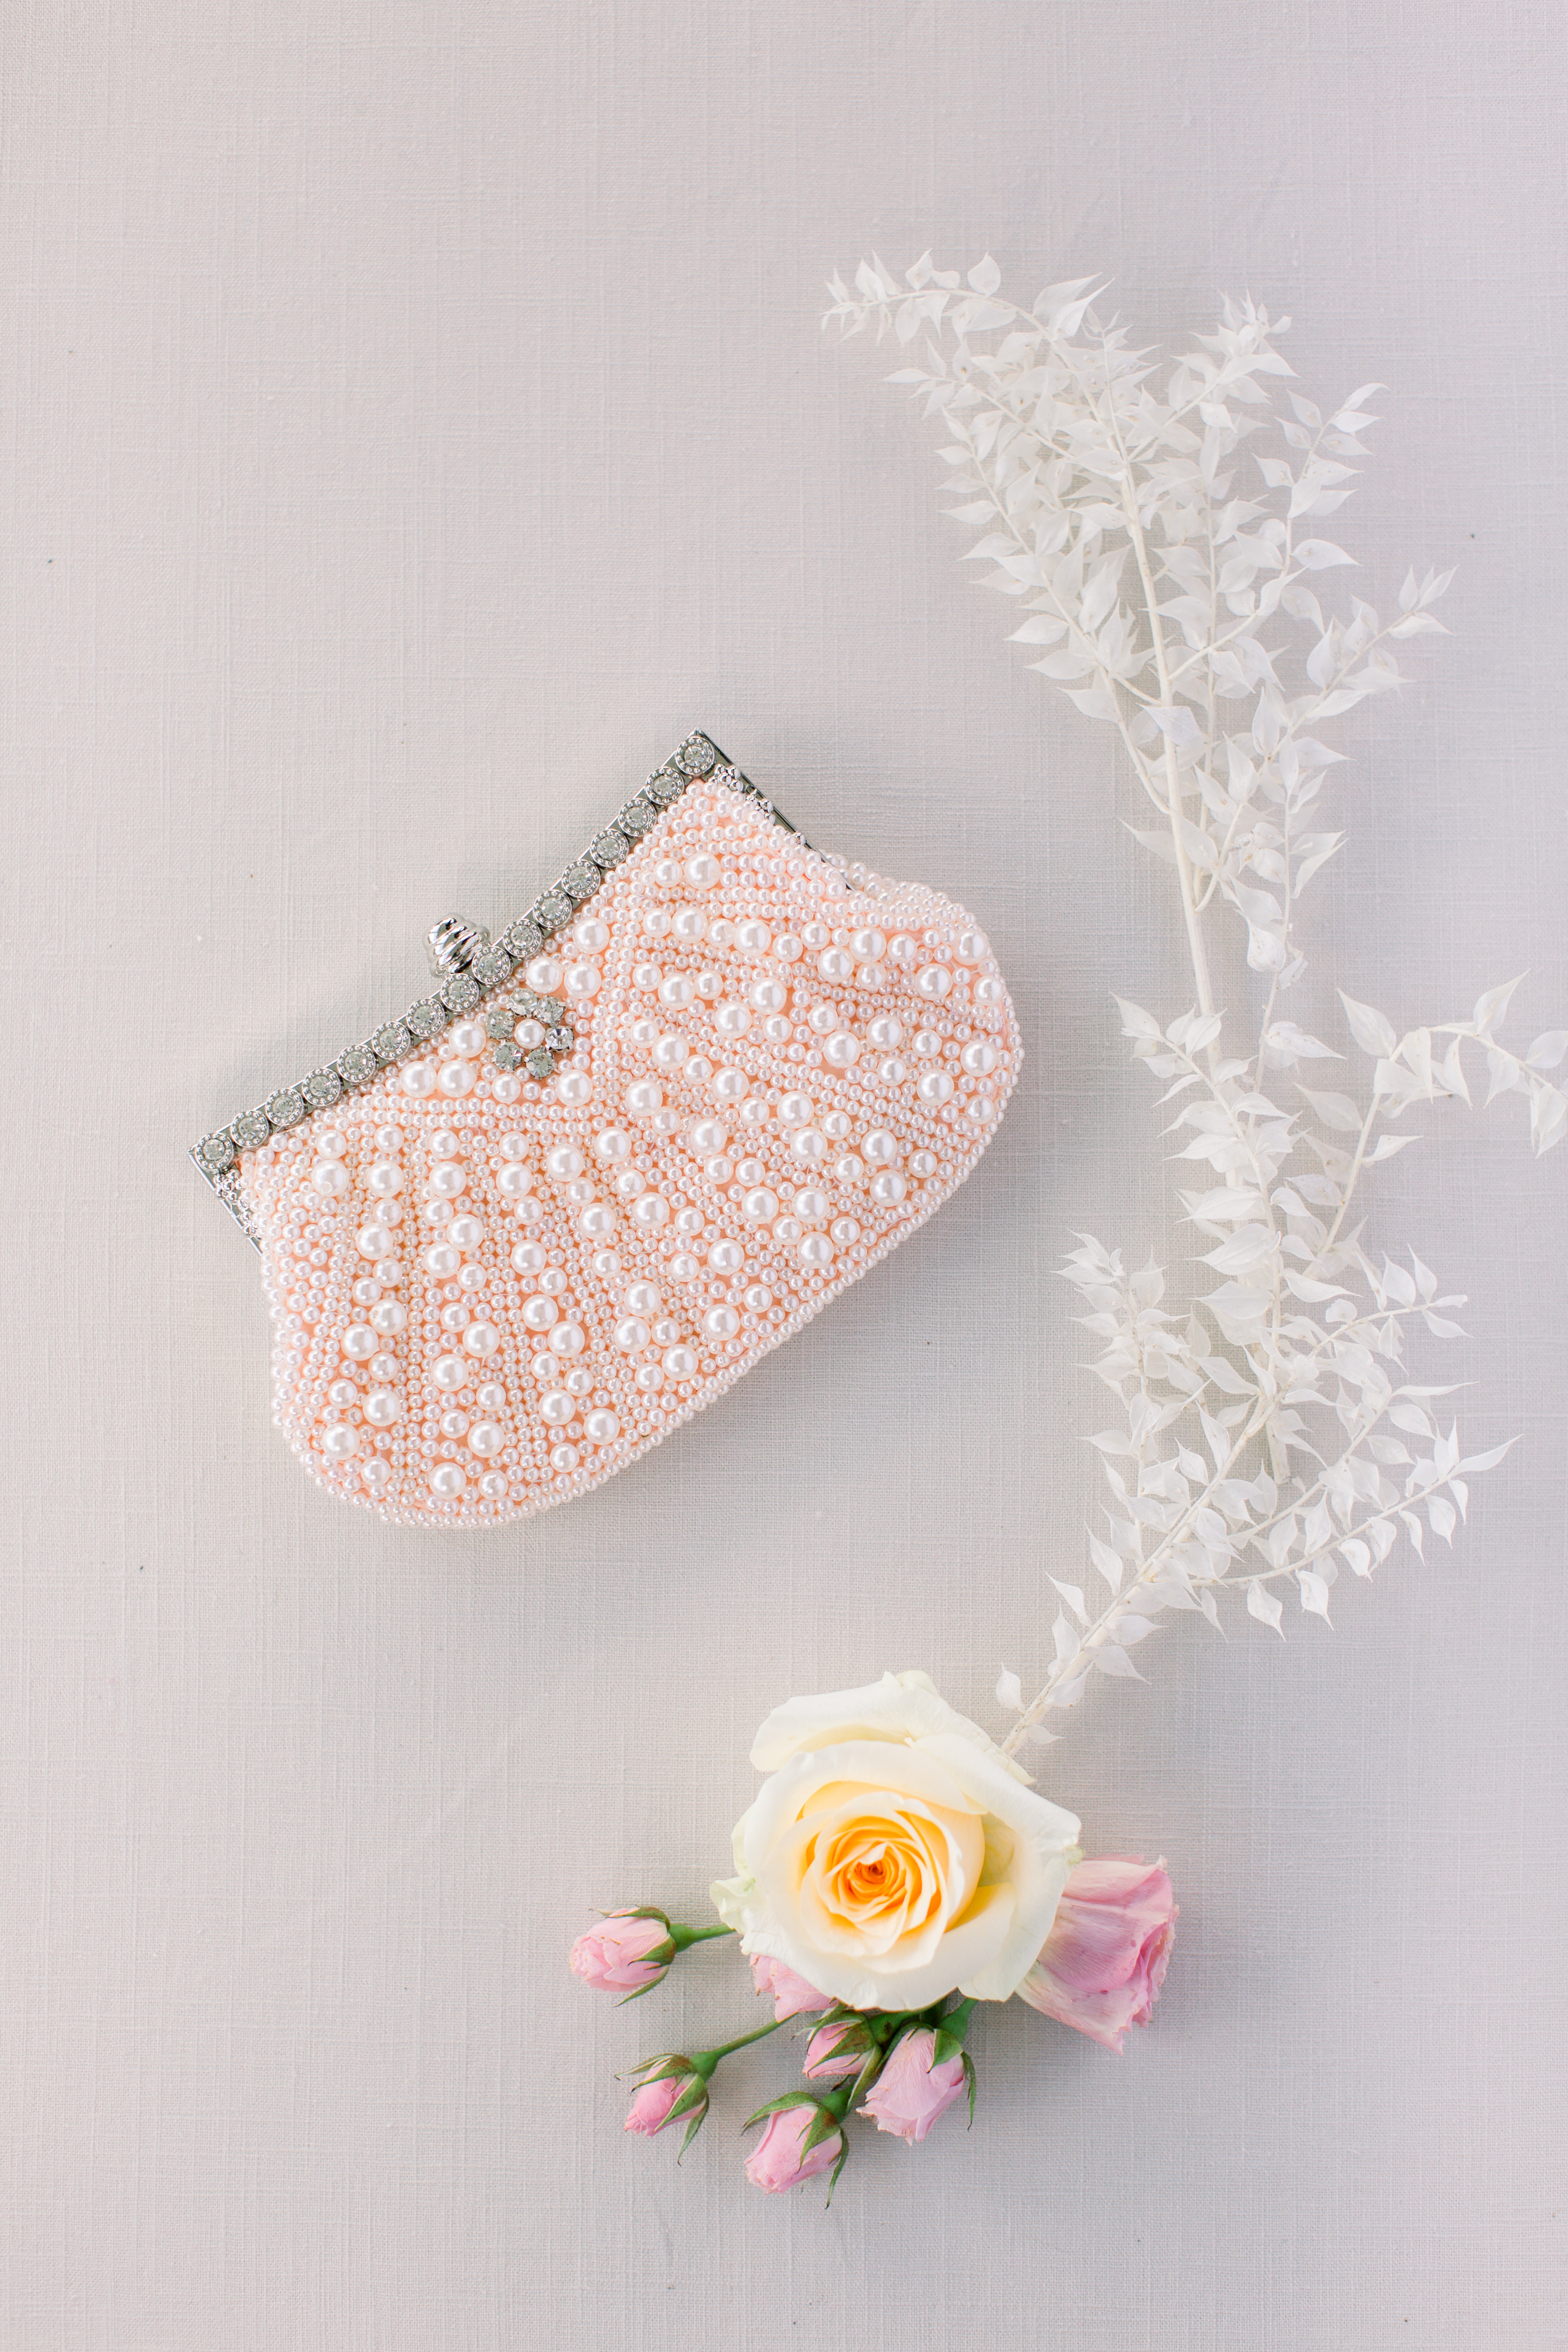 michelle nathan wedding bride's pink beaded clutch